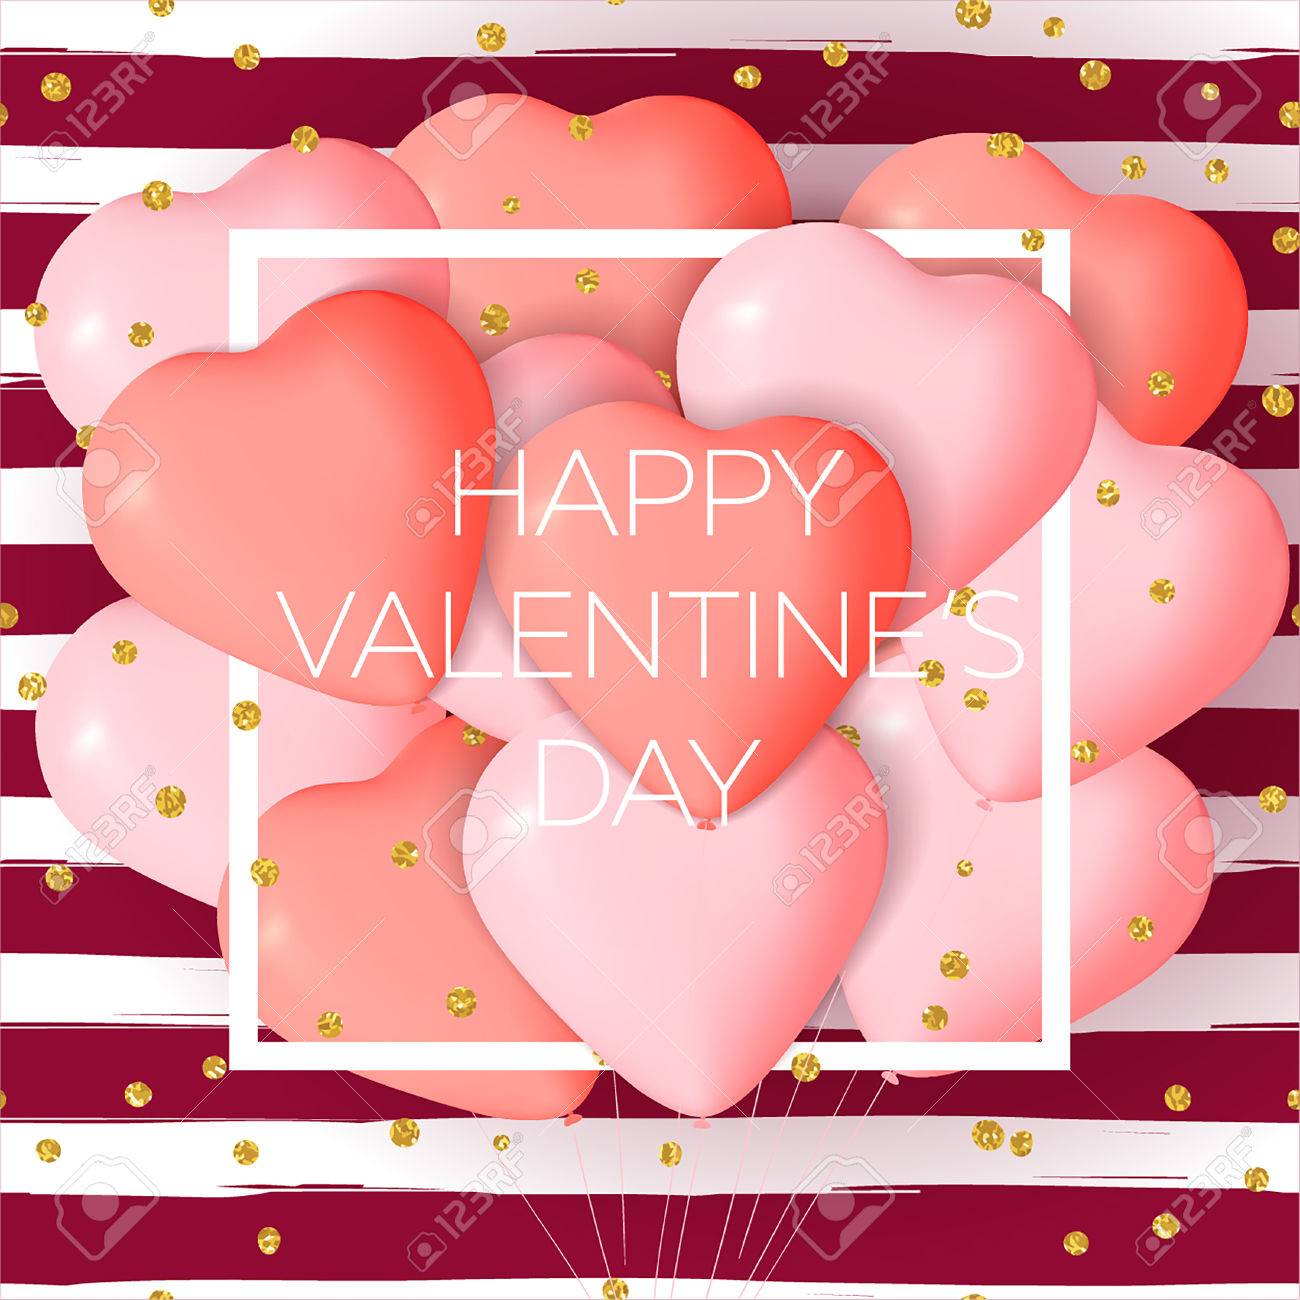 photo stock vector happy valentine s day card template with cute and fancy pink red heart balloons with lettering it ma